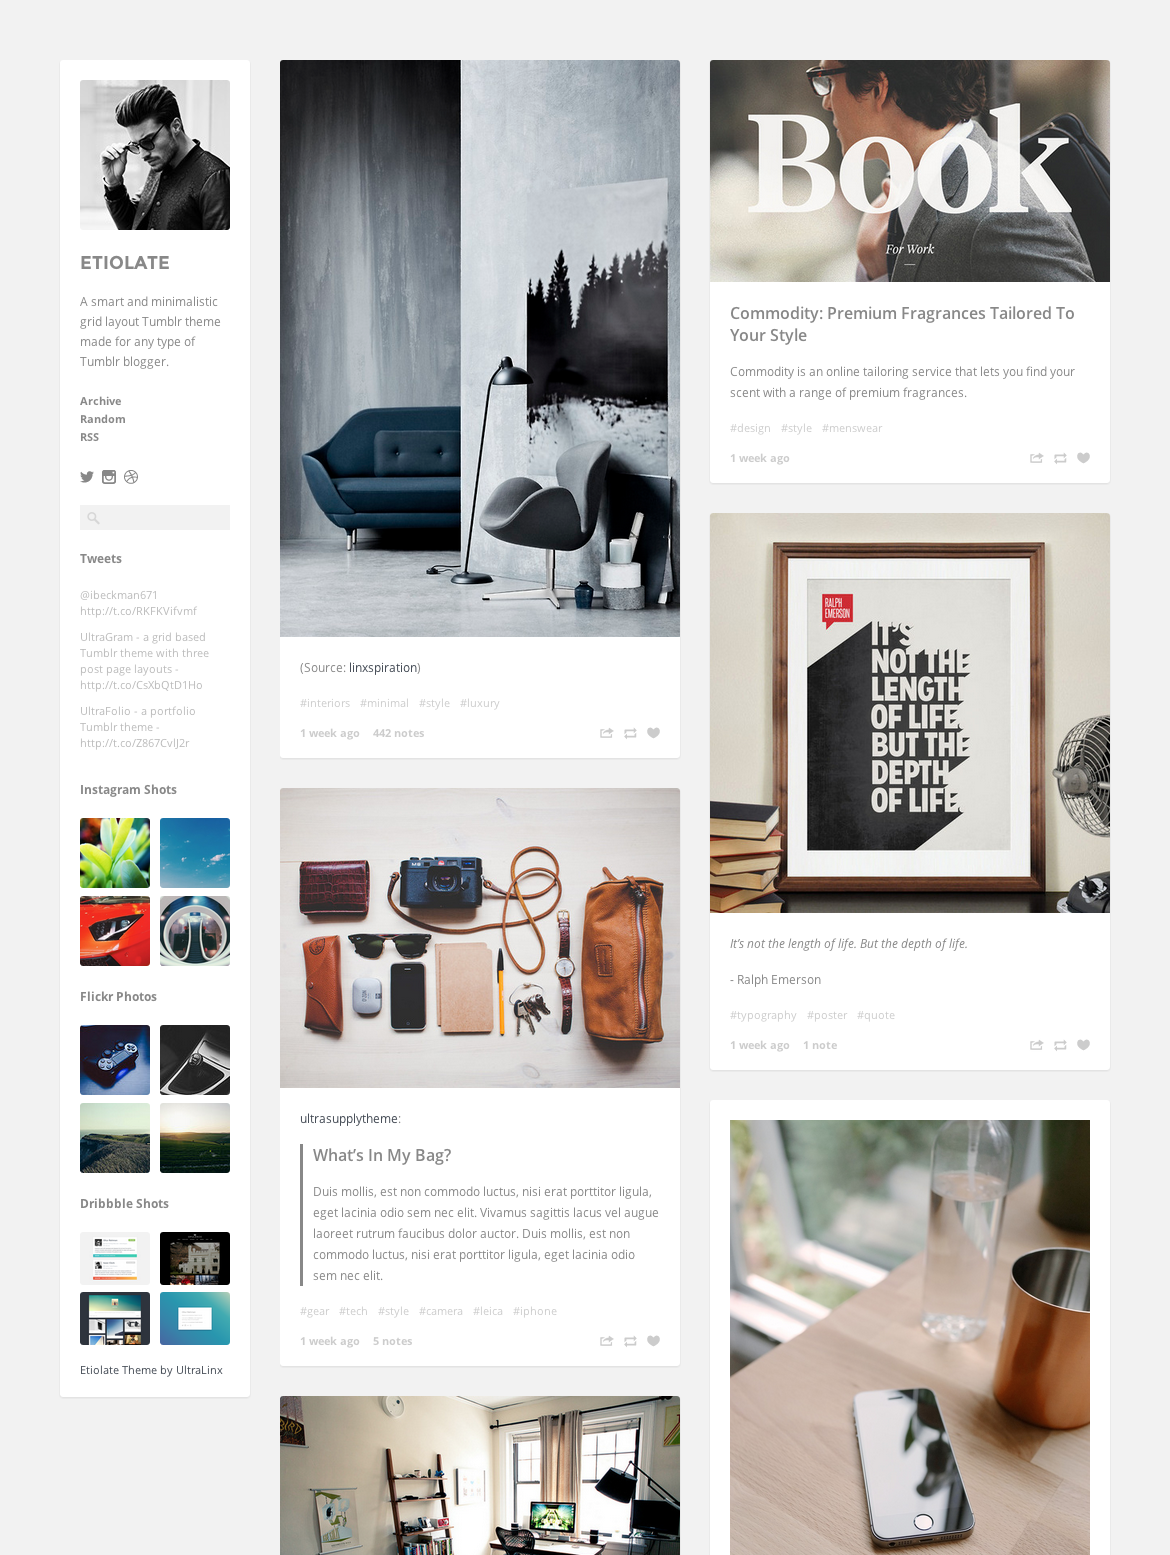 Etiolate Tumblr Theme by Oliur